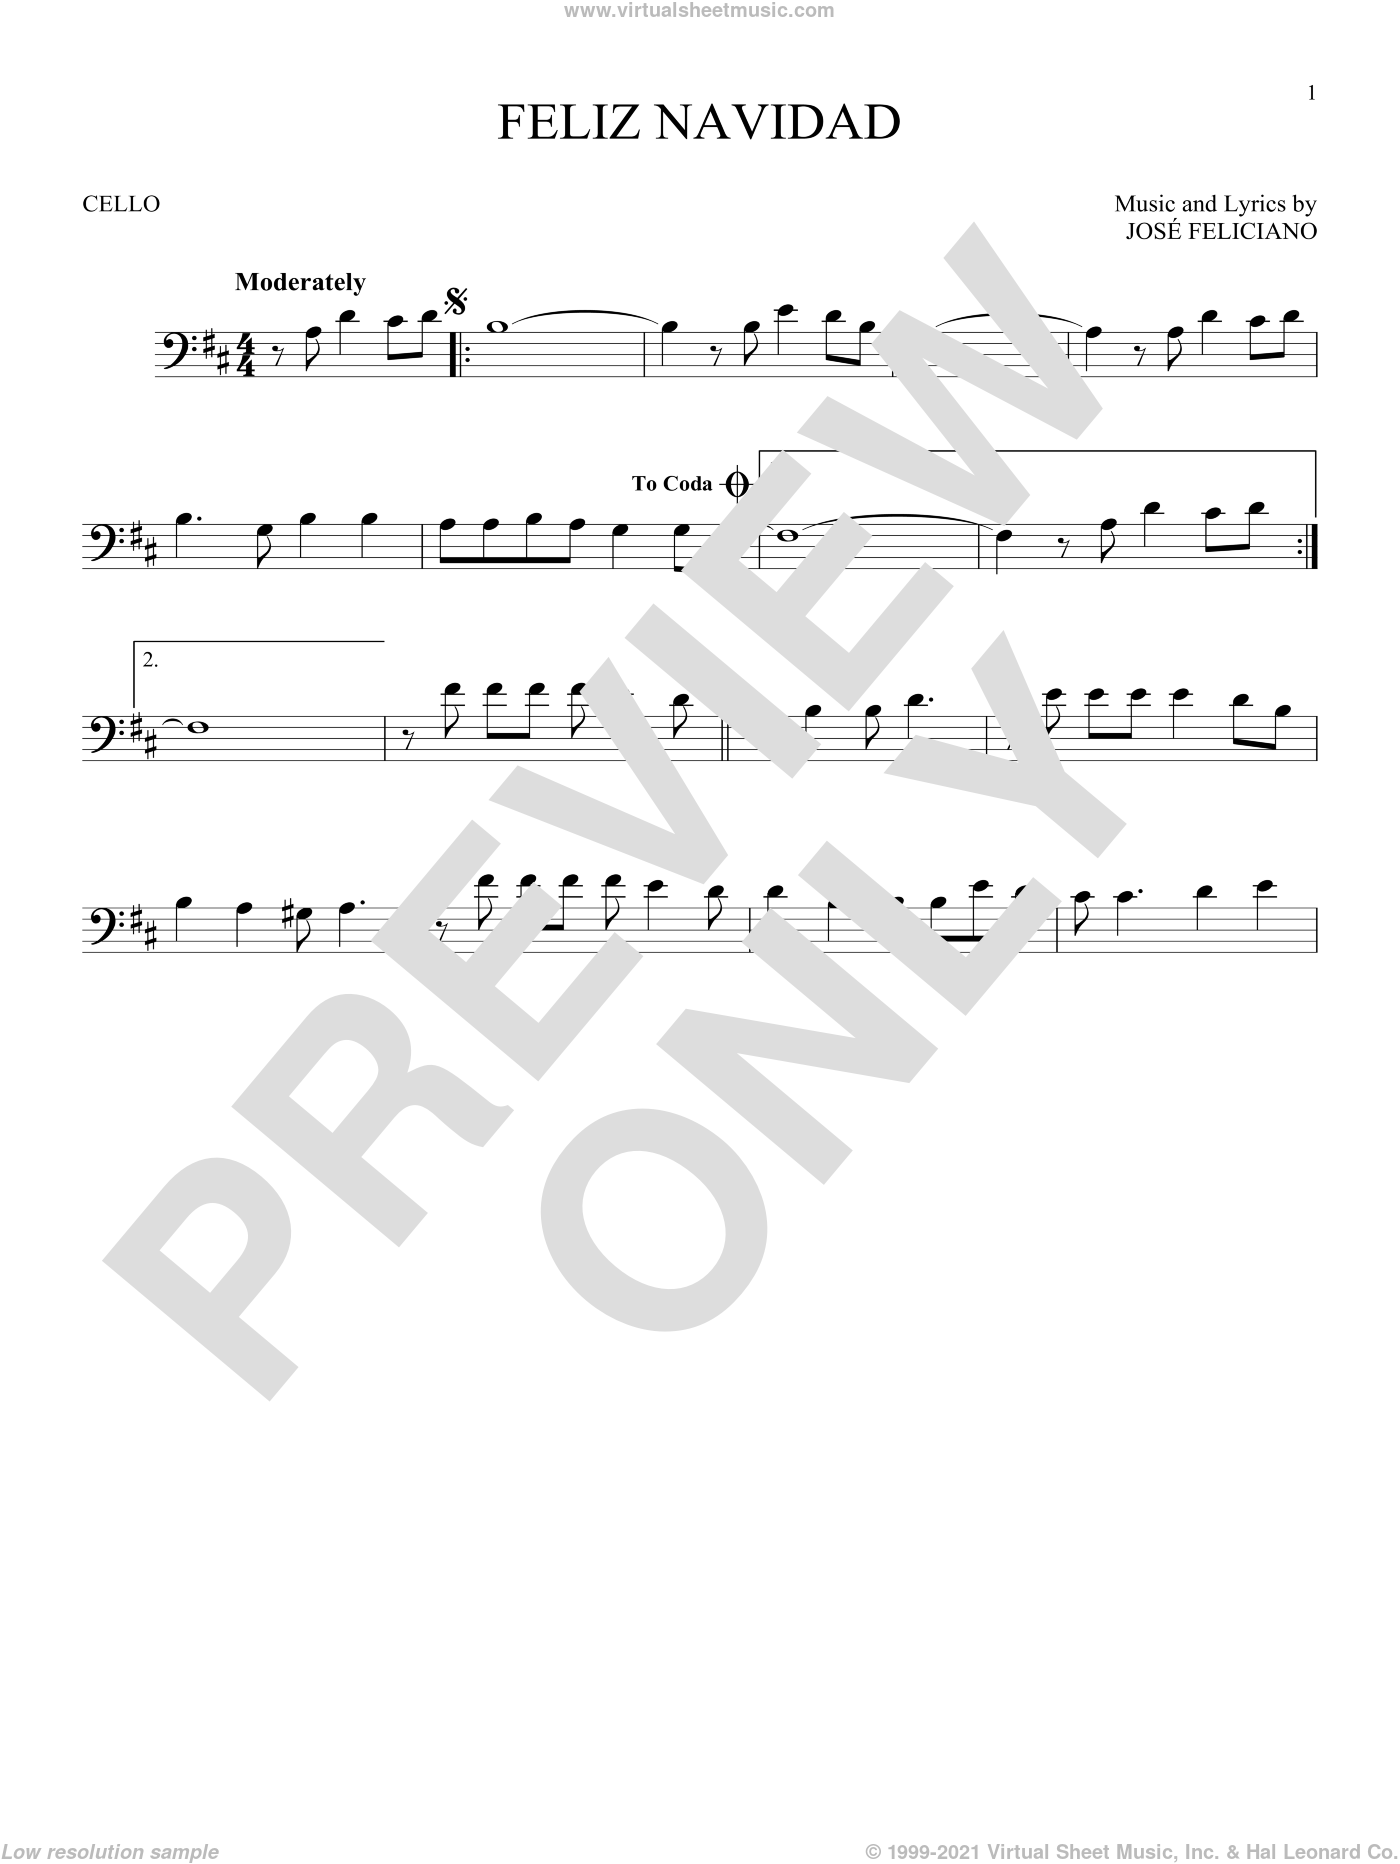 Feliz Navidad sheet music for cello solo by Jose Feliciano, intermediate skill level